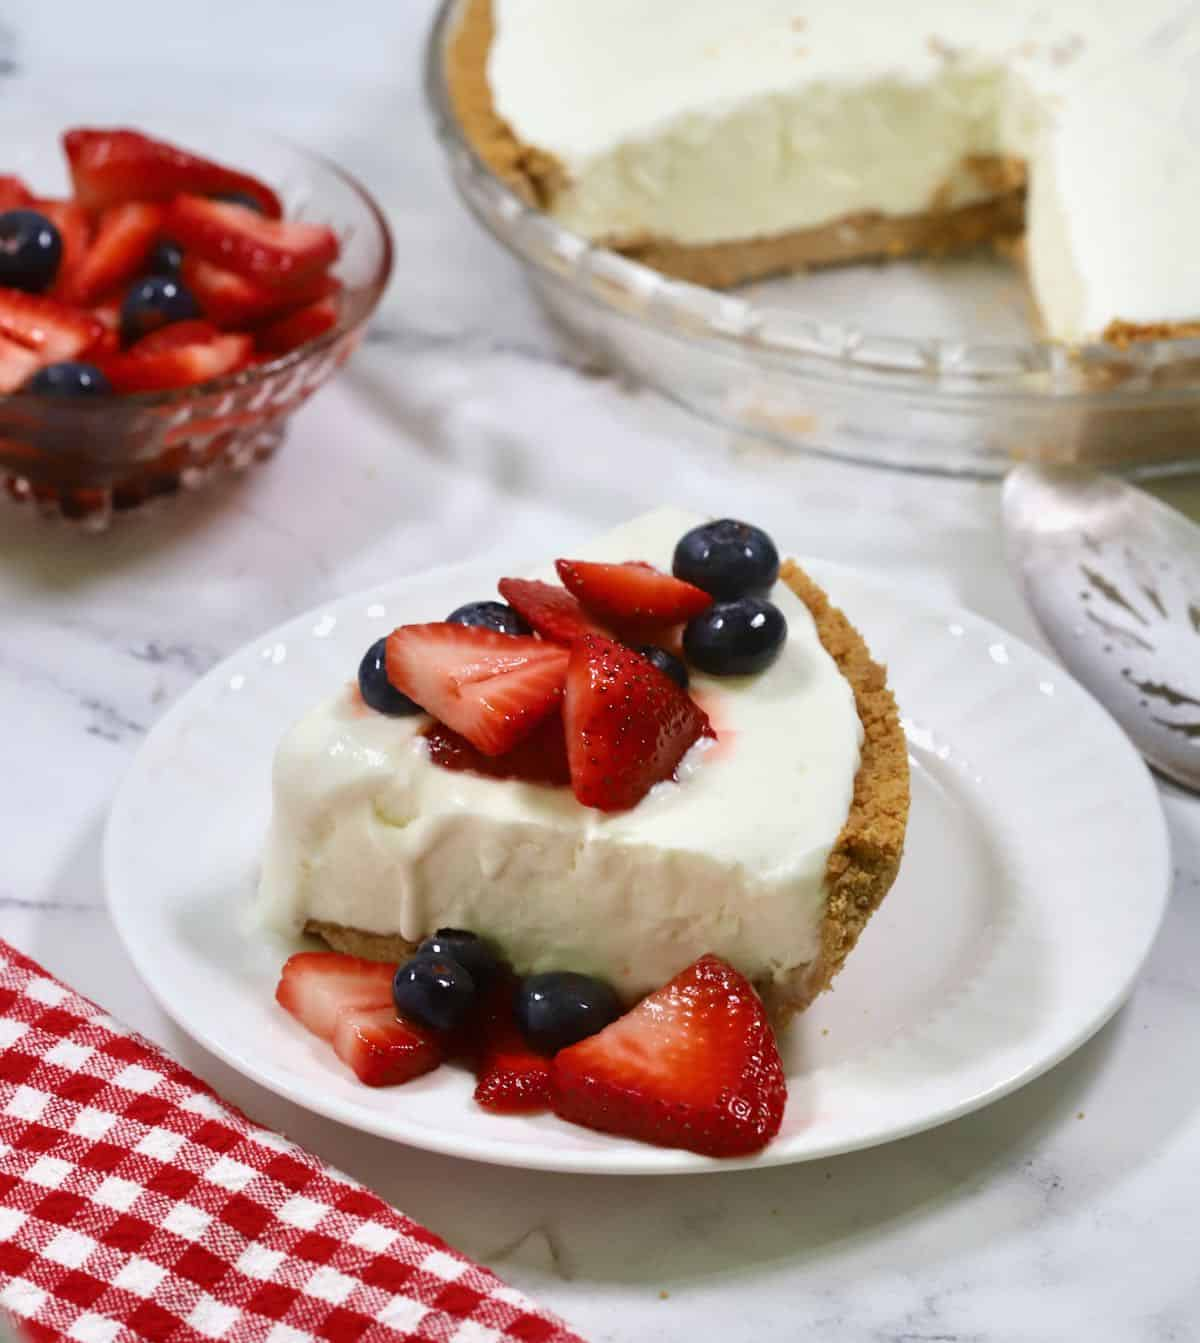 A slice of frozen lemonade pie topped with macerated berries.